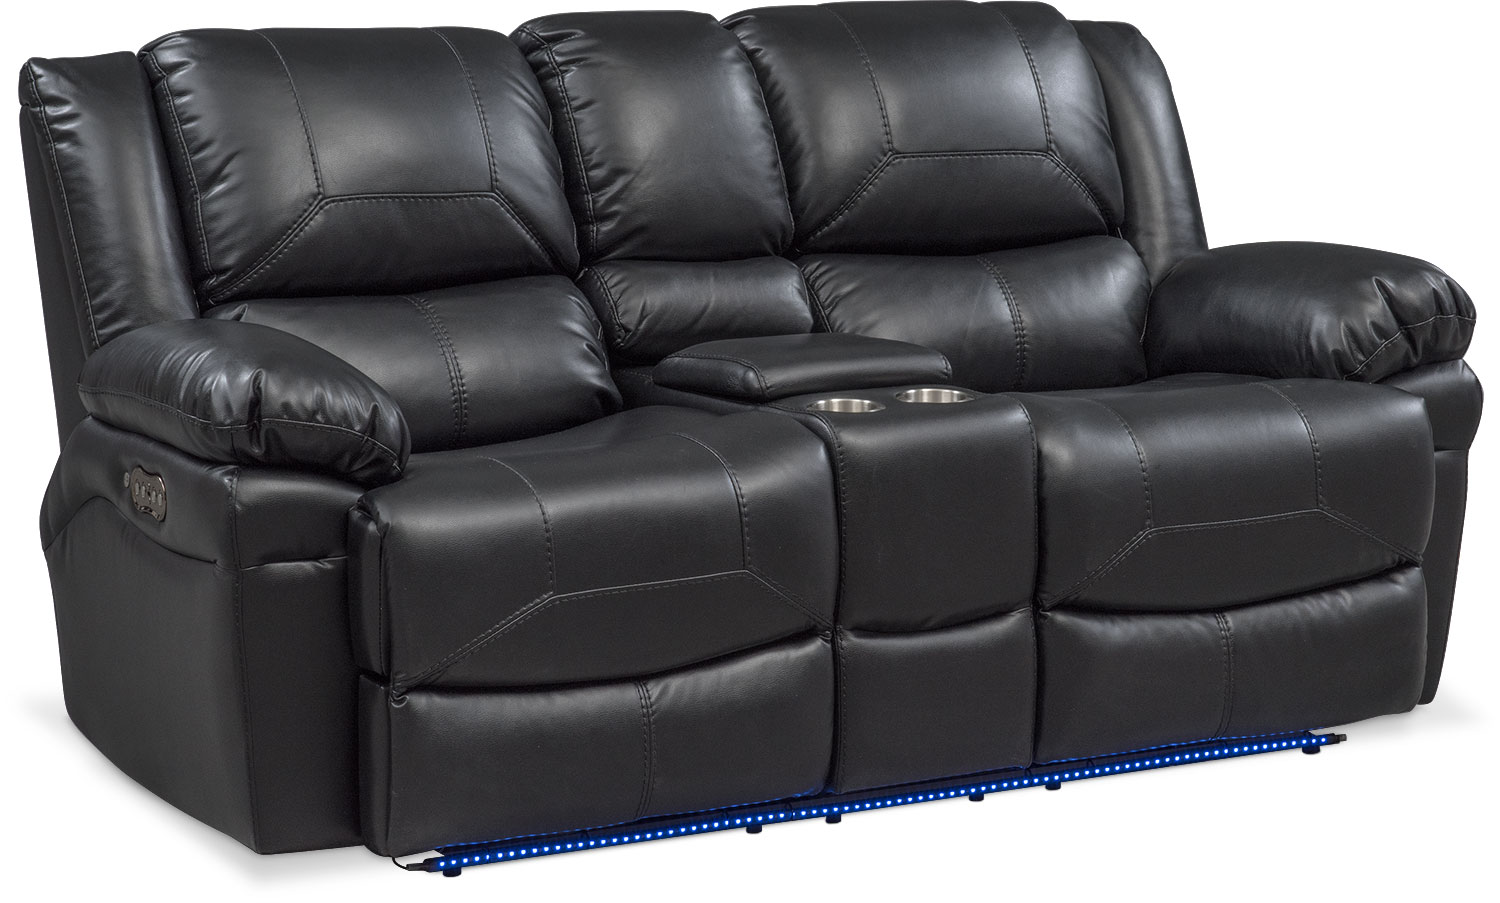 Monza Dual Power Reclining Loveseat with Console - Black   Value